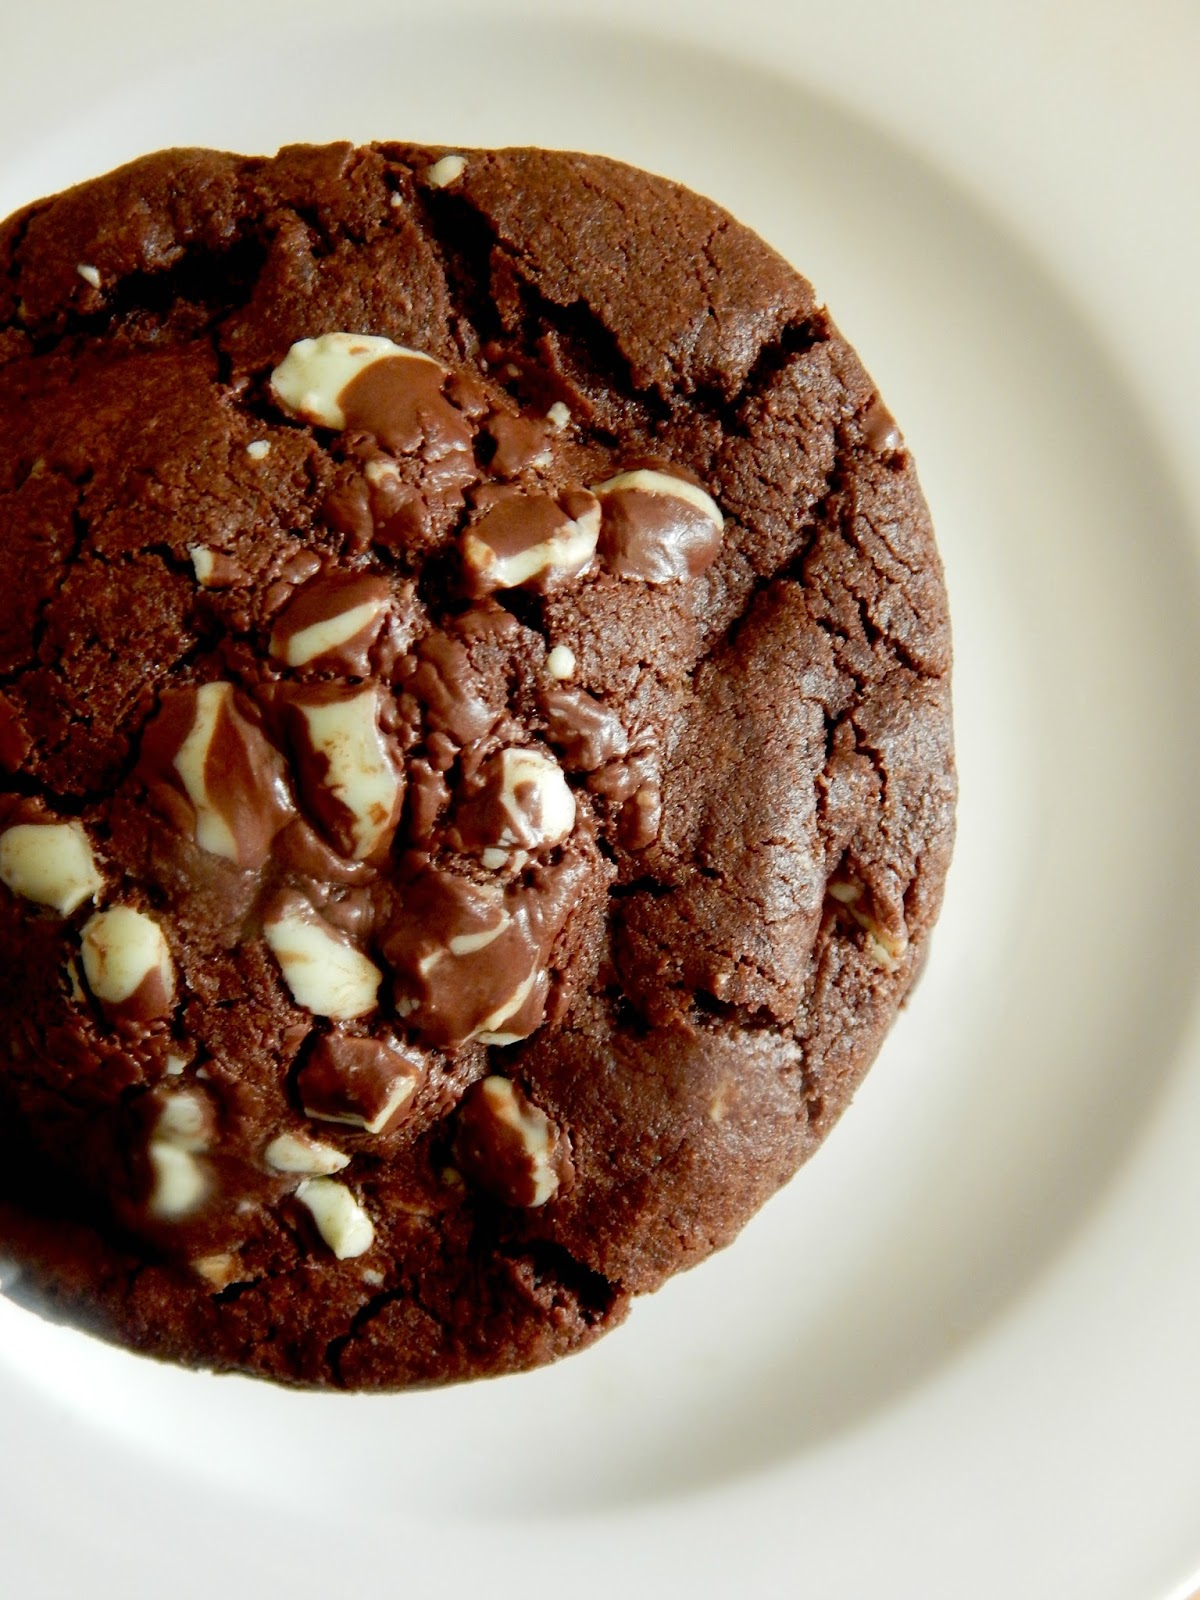 Stuffed Thin Mint Chocolate Cookies